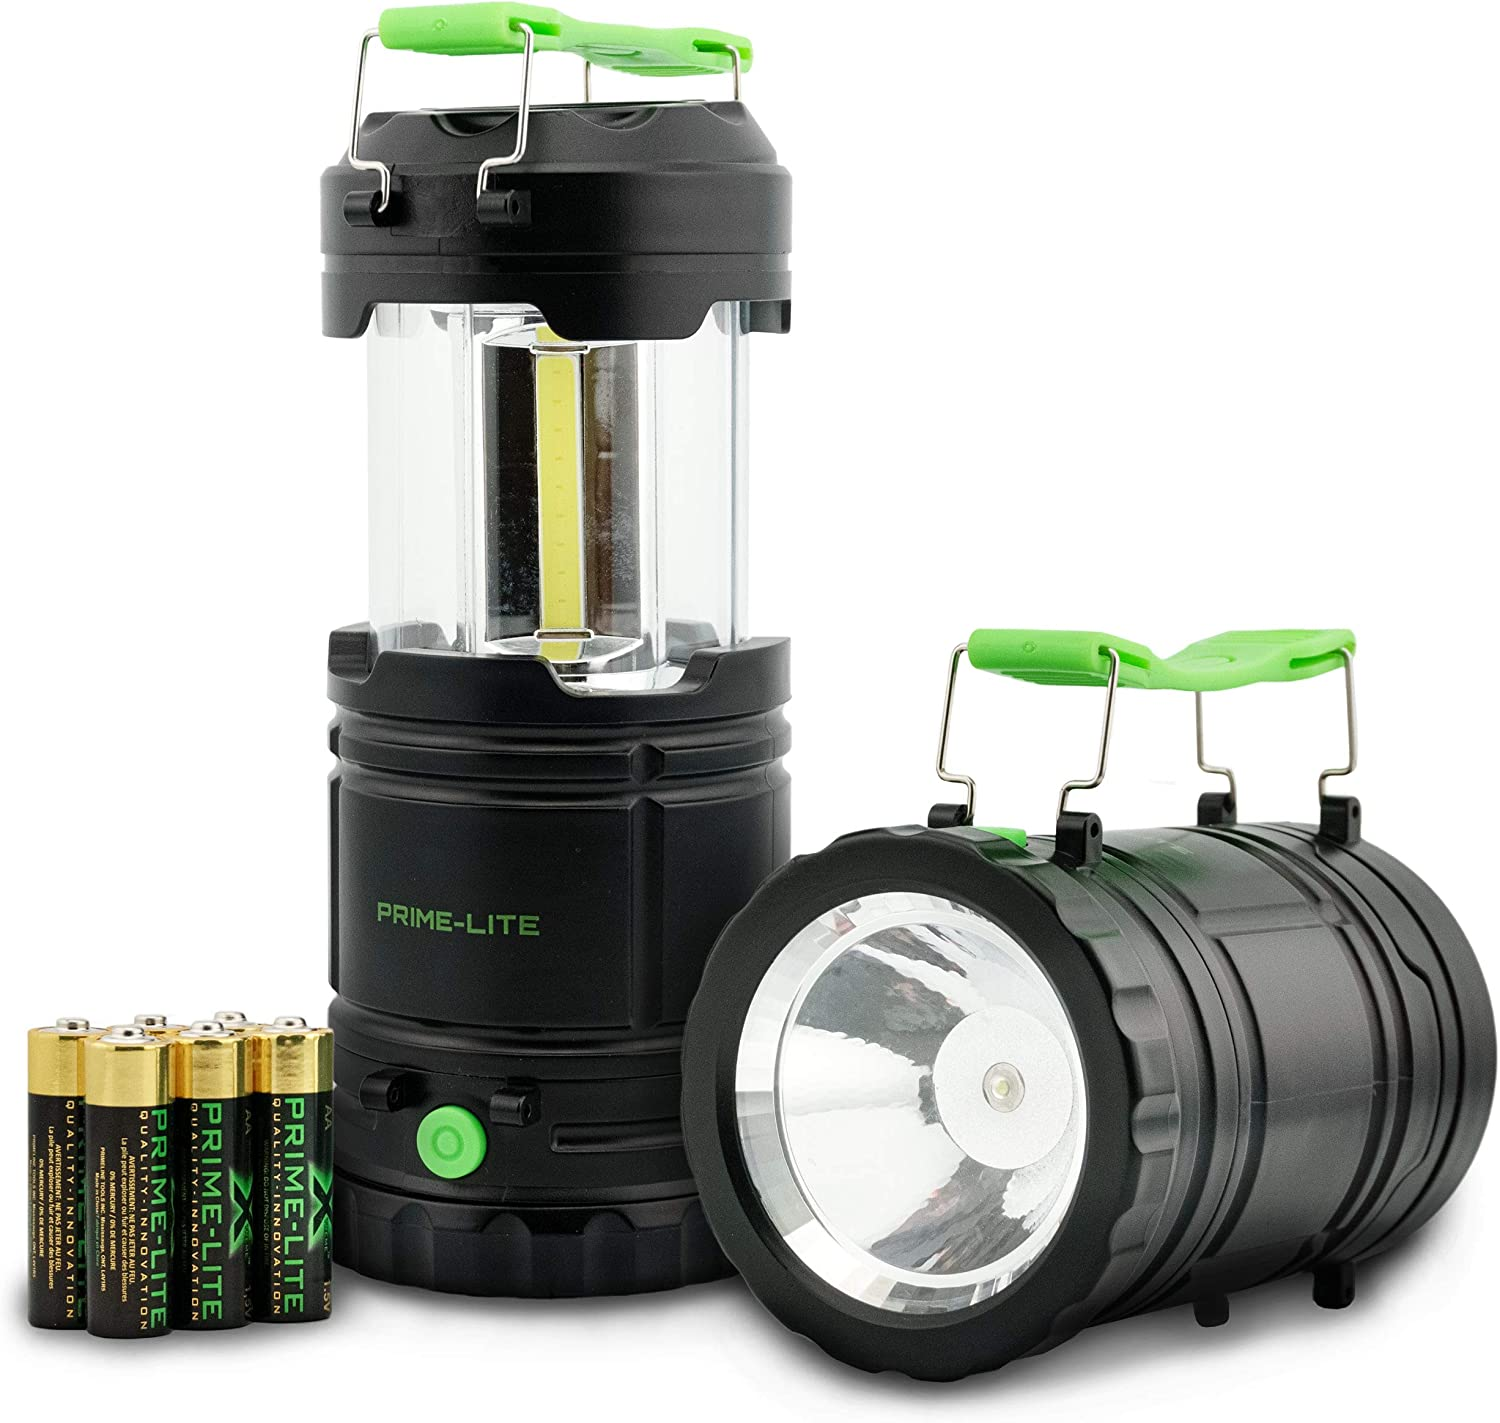 Prime-lite 2 Pack Camping Lantern with Led - Battery Operated Lights - Led Lantern - Flashlights for Emergencies - Hurricane Supplies for Home - Used for Fishing, Hiking & Camping (Batteries Incl)